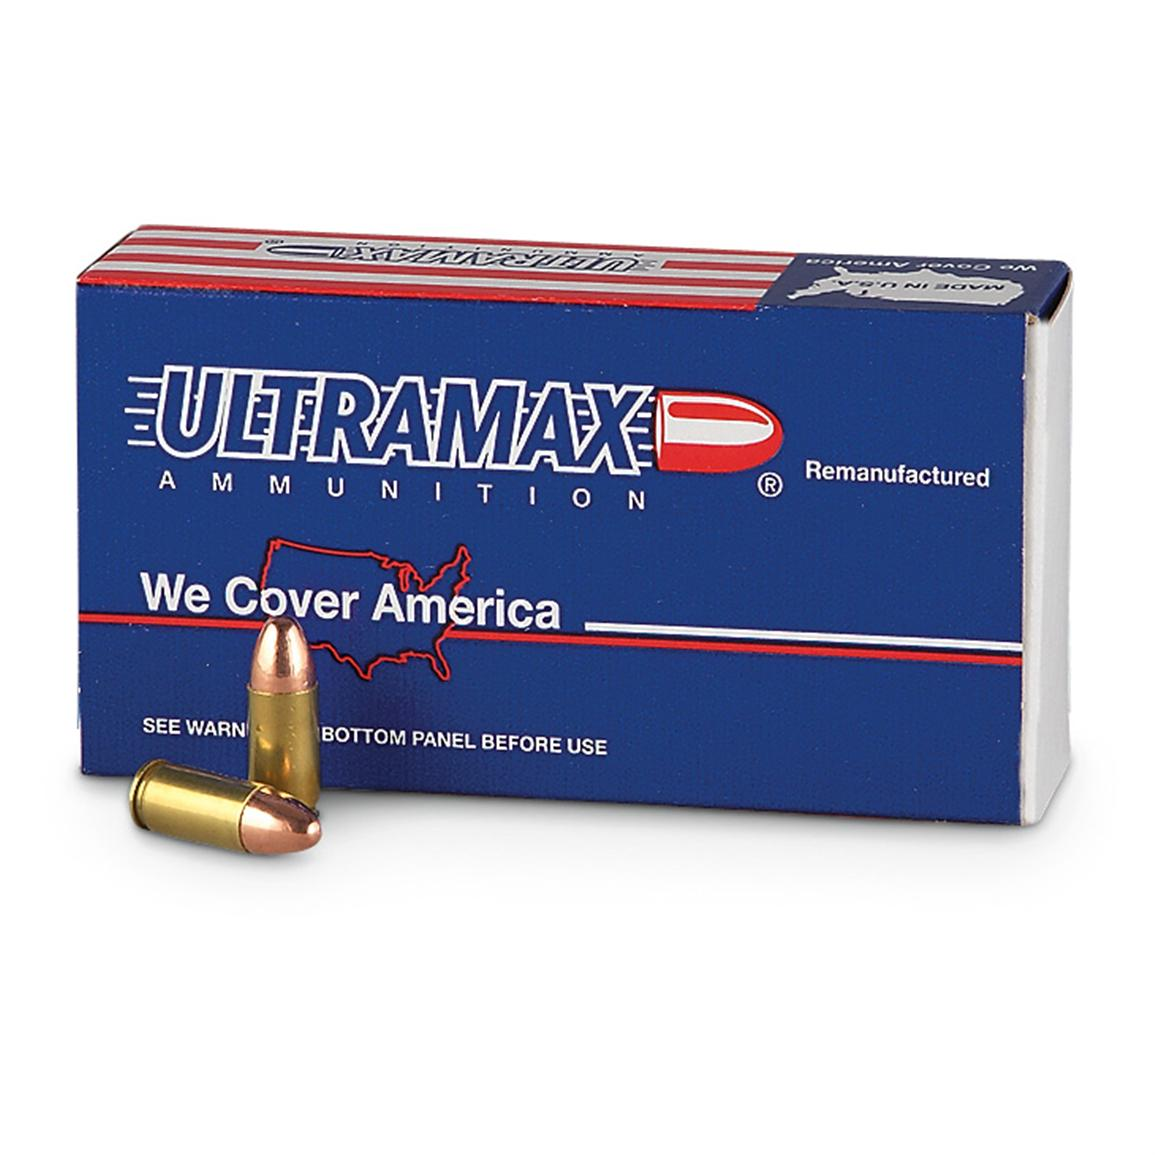 Ultramax Remanufactured, 9mm Luger, FMJ, 115 Grain, 250 Rounds